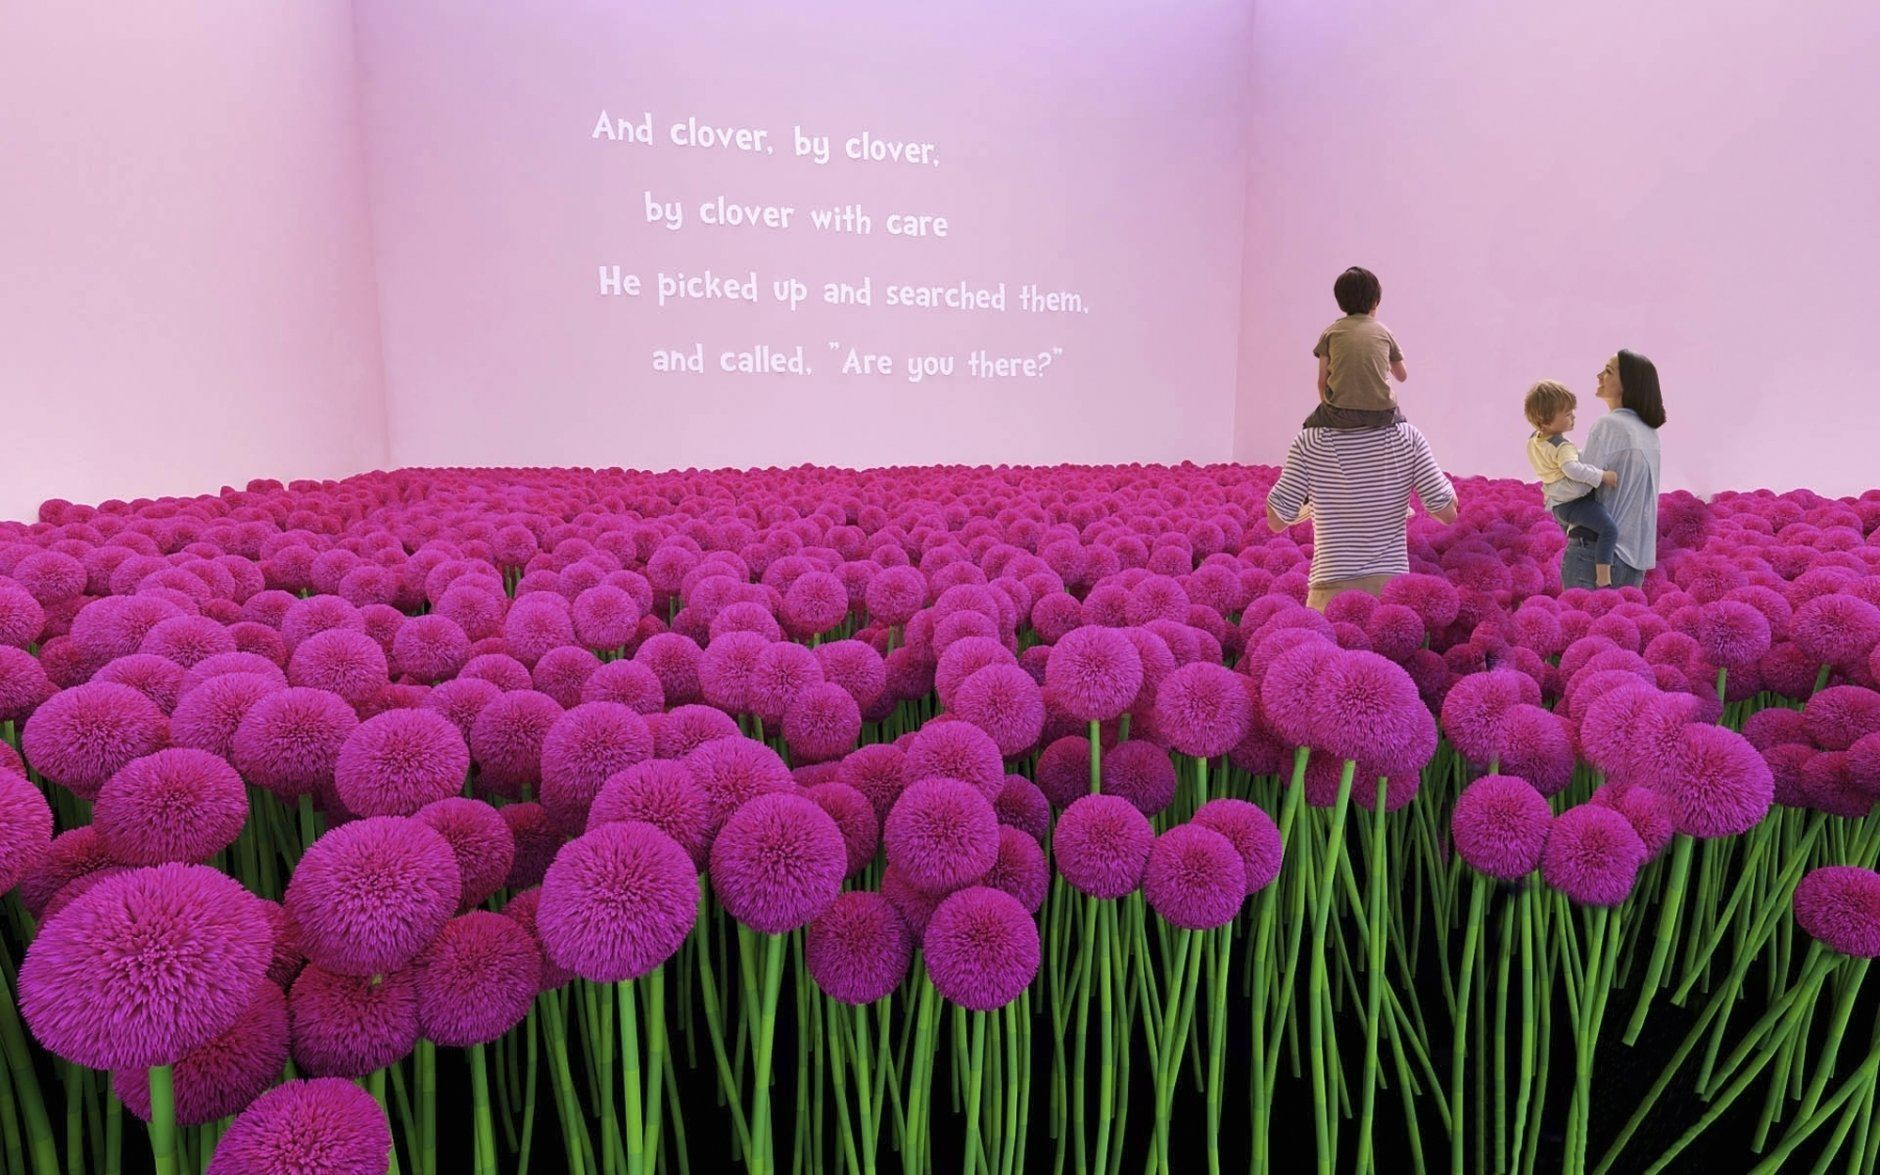 """This undated rendering provided by Dr. Seuss Enterprises shows a field of clover, from Seuss' book """"Horton Hears a Who,"""" that will be incorporated as part of a touring immersive attraction tied to the work of the famous late author and illustrator of children's books. The exhibit is scheduled debut in Toronto in October 2019, followed by visits to several cities in the United States. (Kilburn Experiences, LLC/Dr. Seuss Enterprises via AP)"""